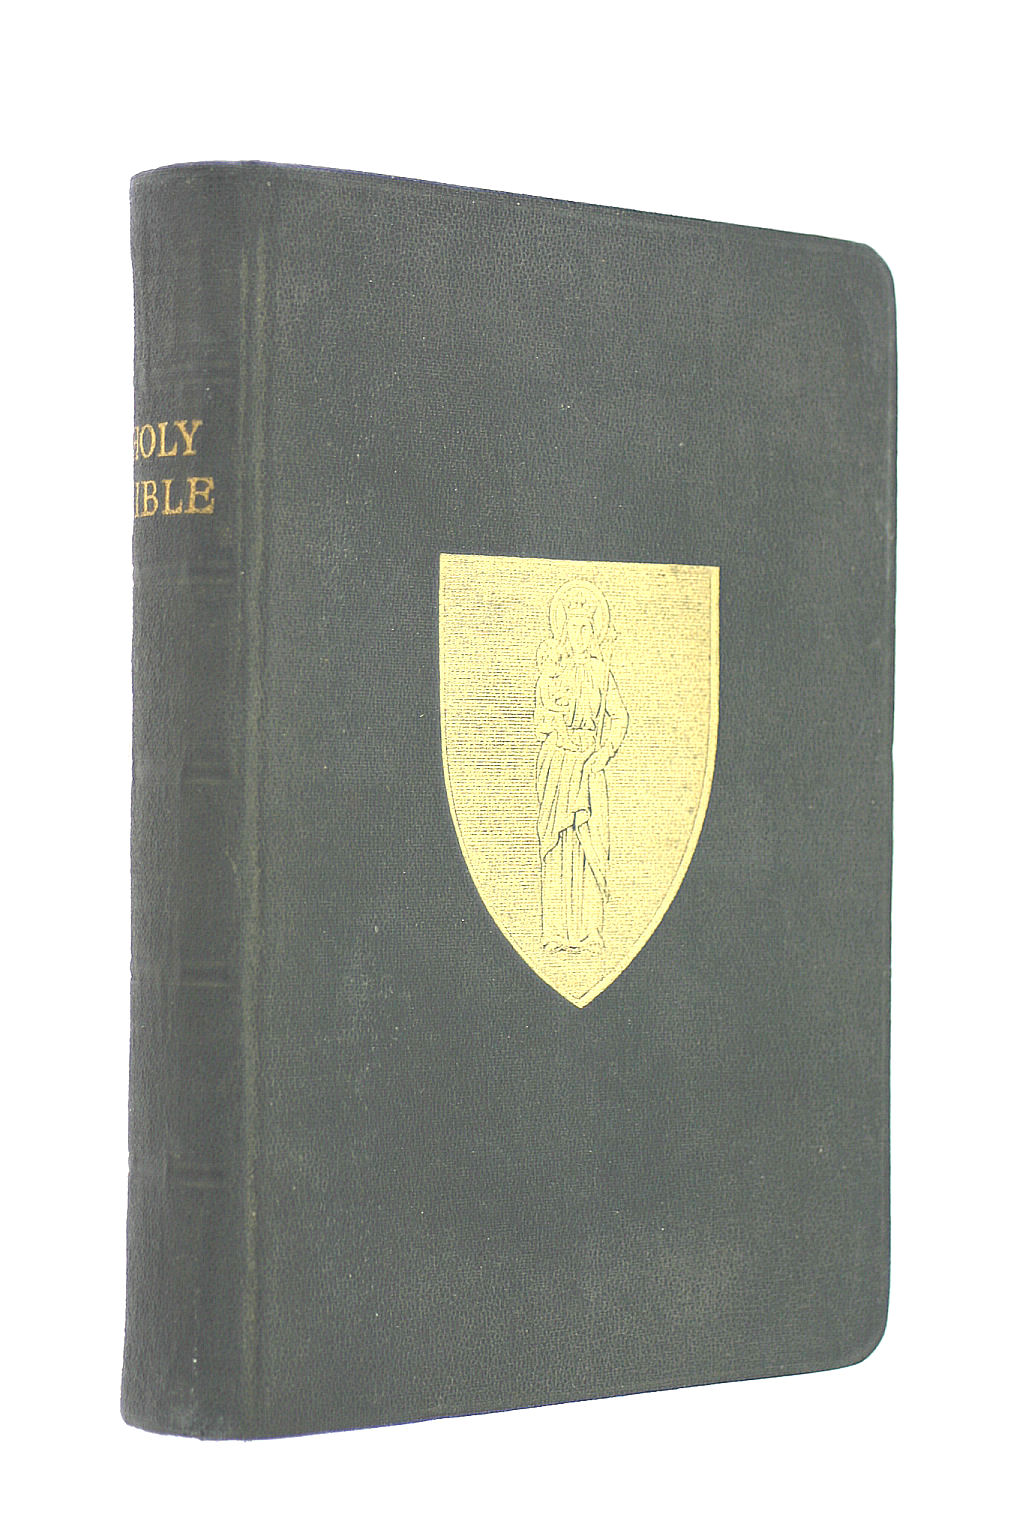 Image for The Holy Bible containing the old and new Testaments (Minion 8vo)